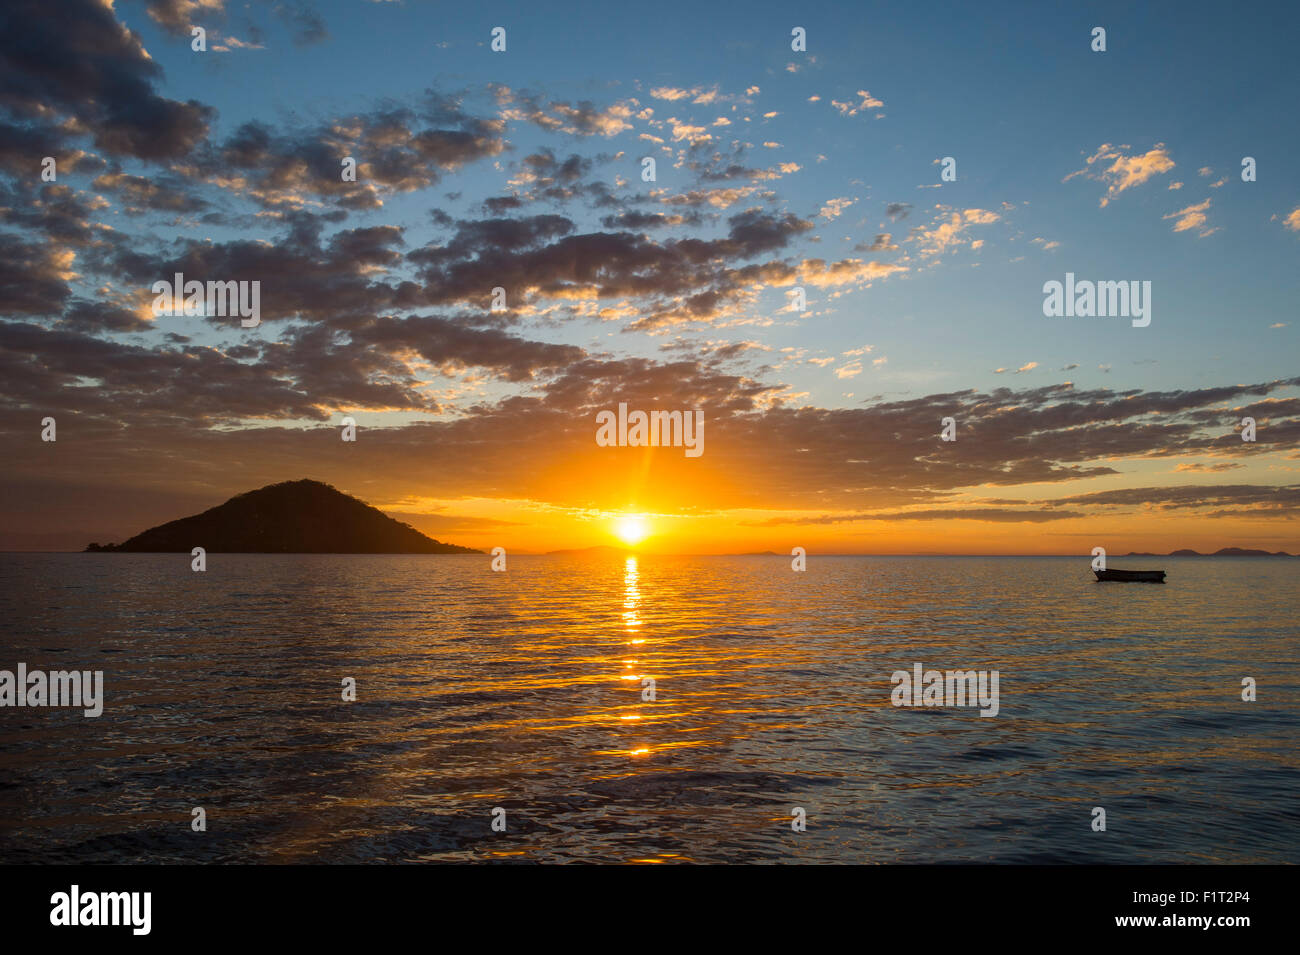 Sunset at Lake Malawi, Cape Maclear, Malawi, Africa - Stock Image